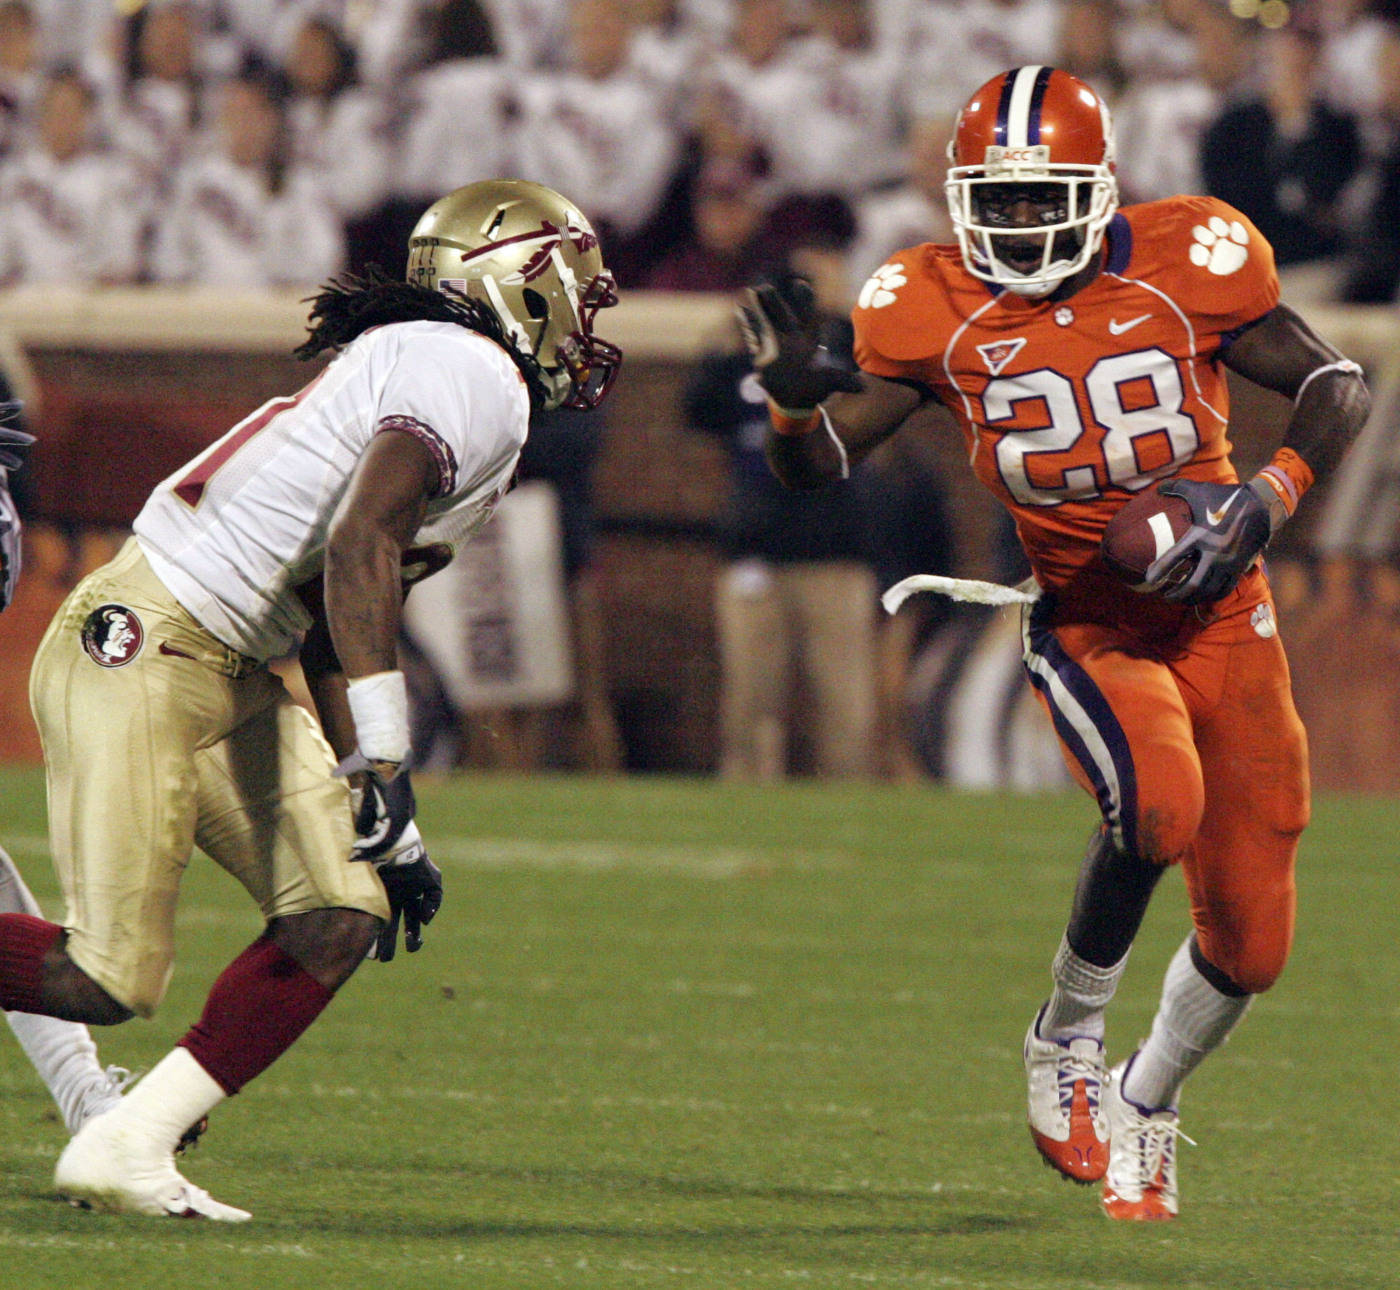 Clemson's C.J.Spiller (28) runs for a first down as Florida State's Patrick Robinson (21) defends during the first half. (AP Photo/Mary Ann Chastain)